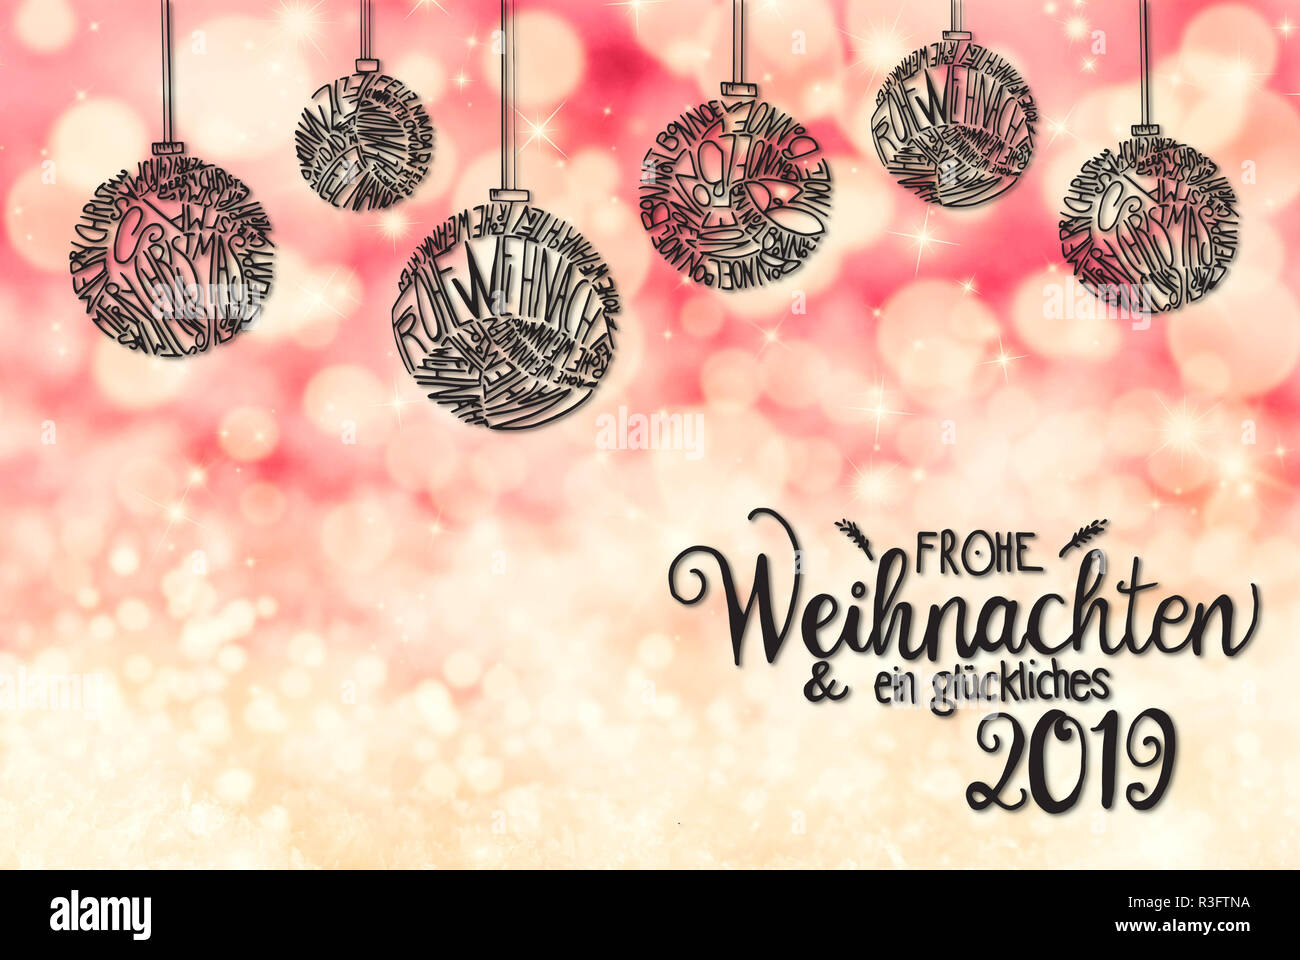 Sketch Weihnachten.Sketch Of Christmas Tree Ball Ornament Merry Christmas In Different